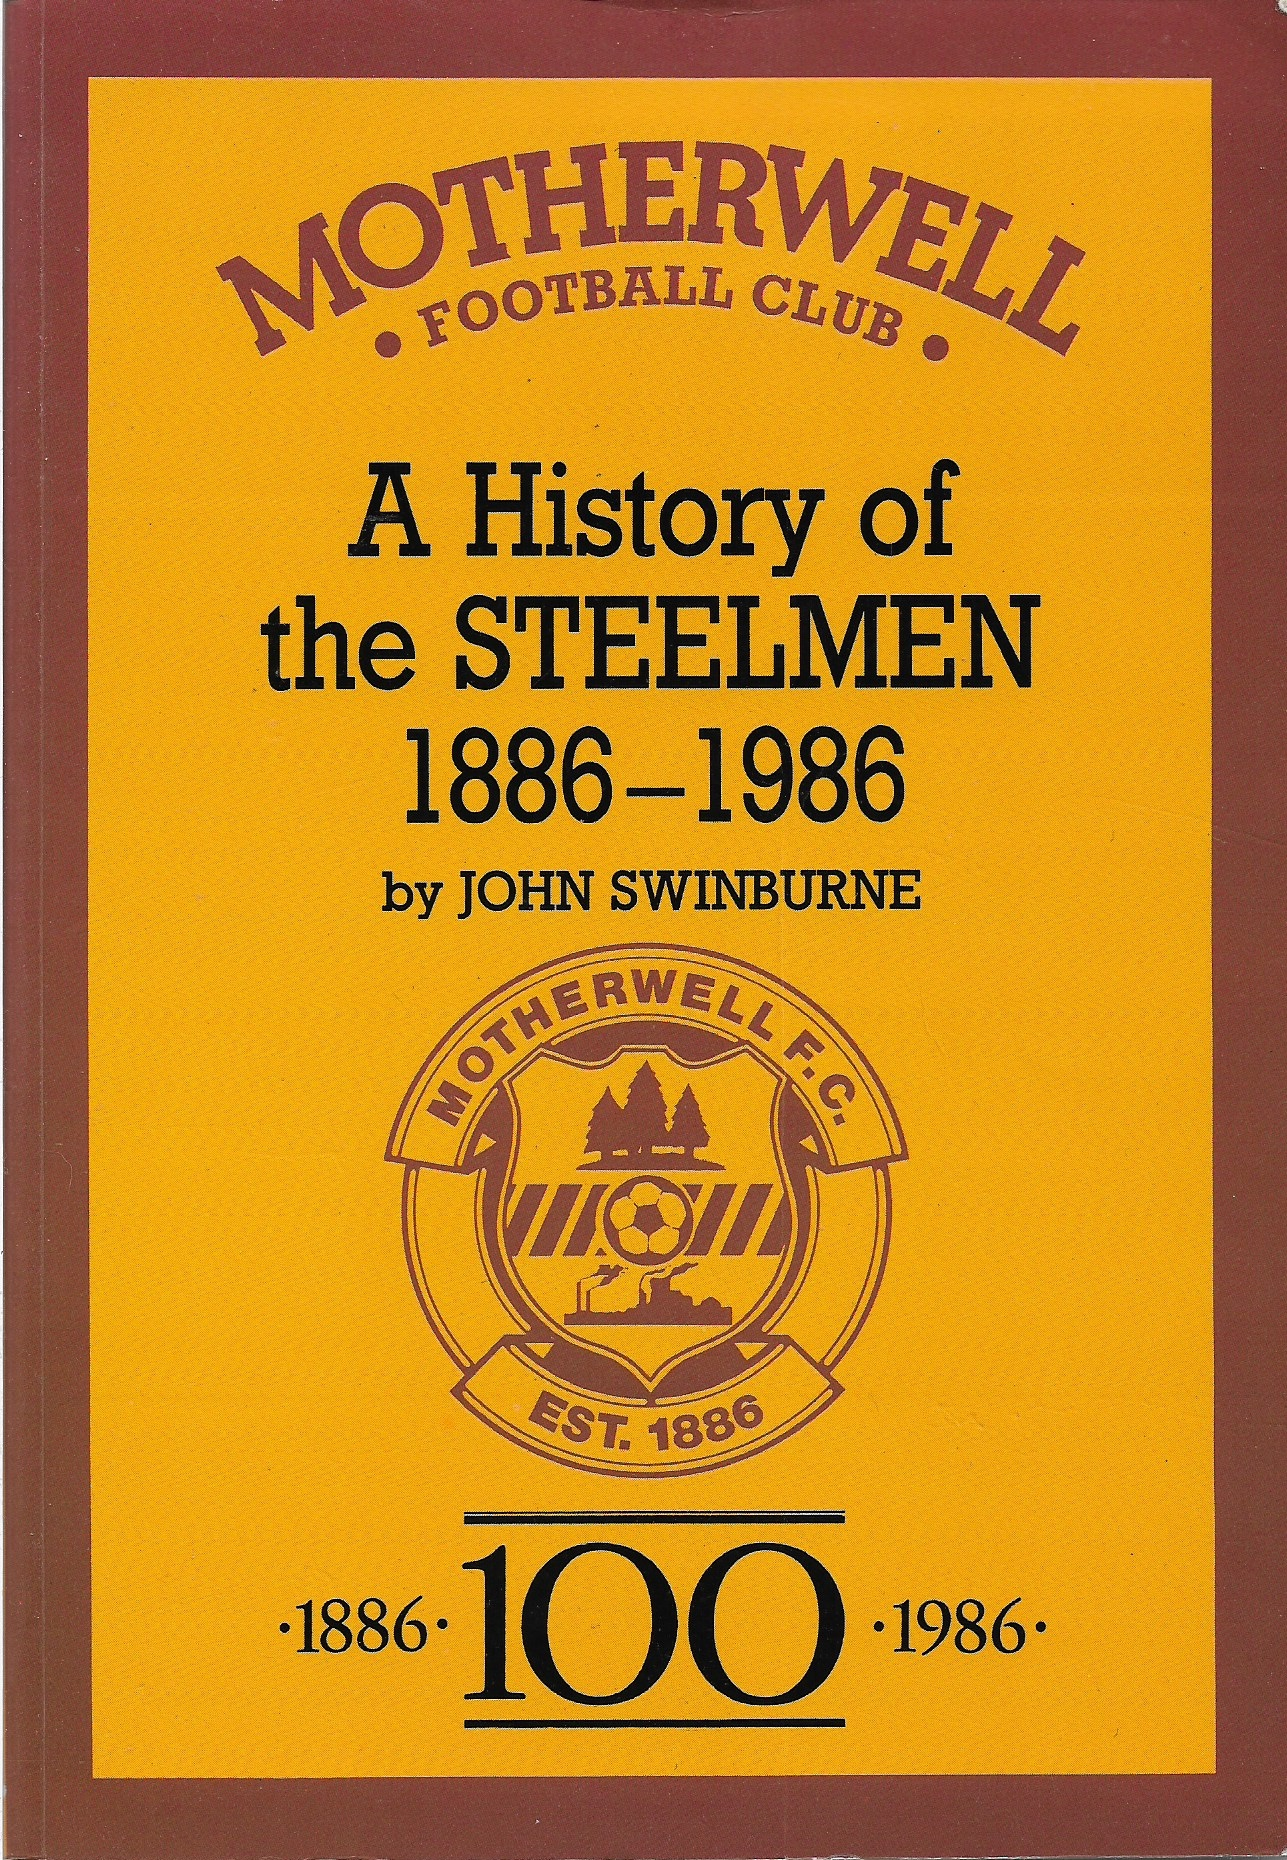 A History of the Steelmen 1886-1986